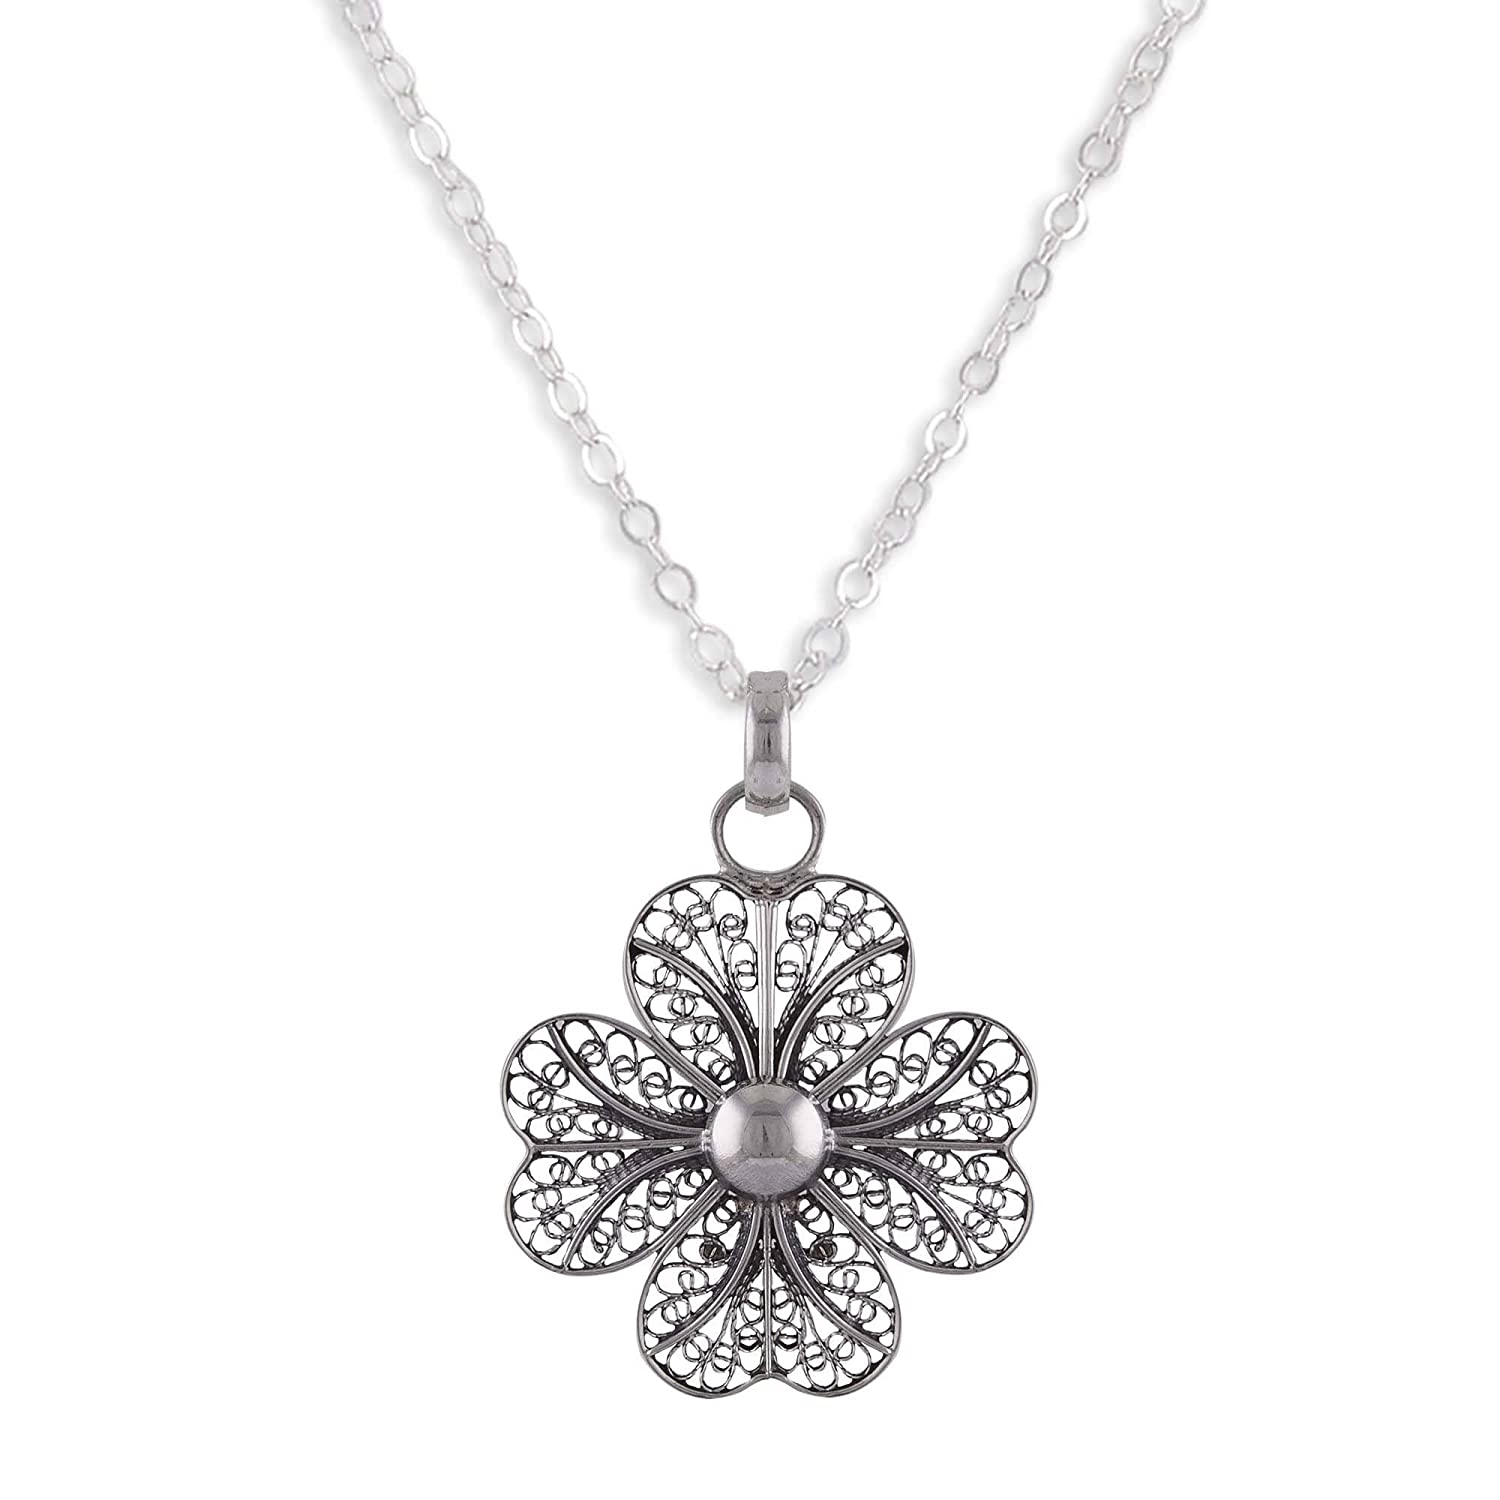 NOVICA .925 Sterling Silver Pendant Necklace 17.5 Enchanted Clover